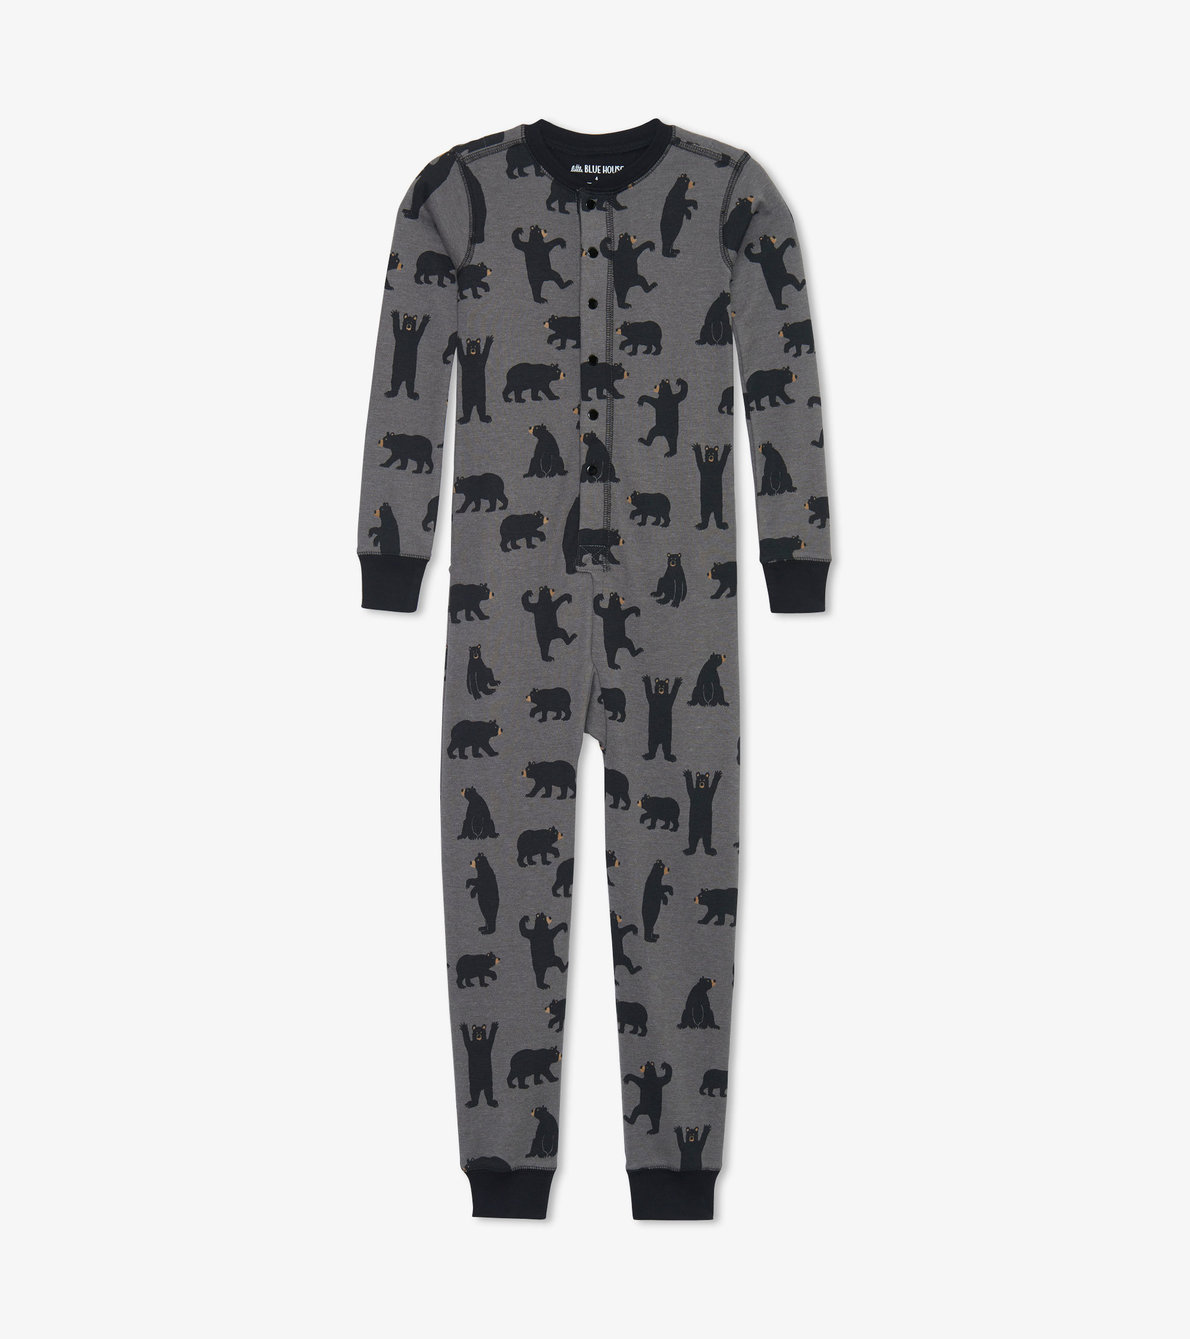 View larger image of Charcoal Bears Kids Union Suit